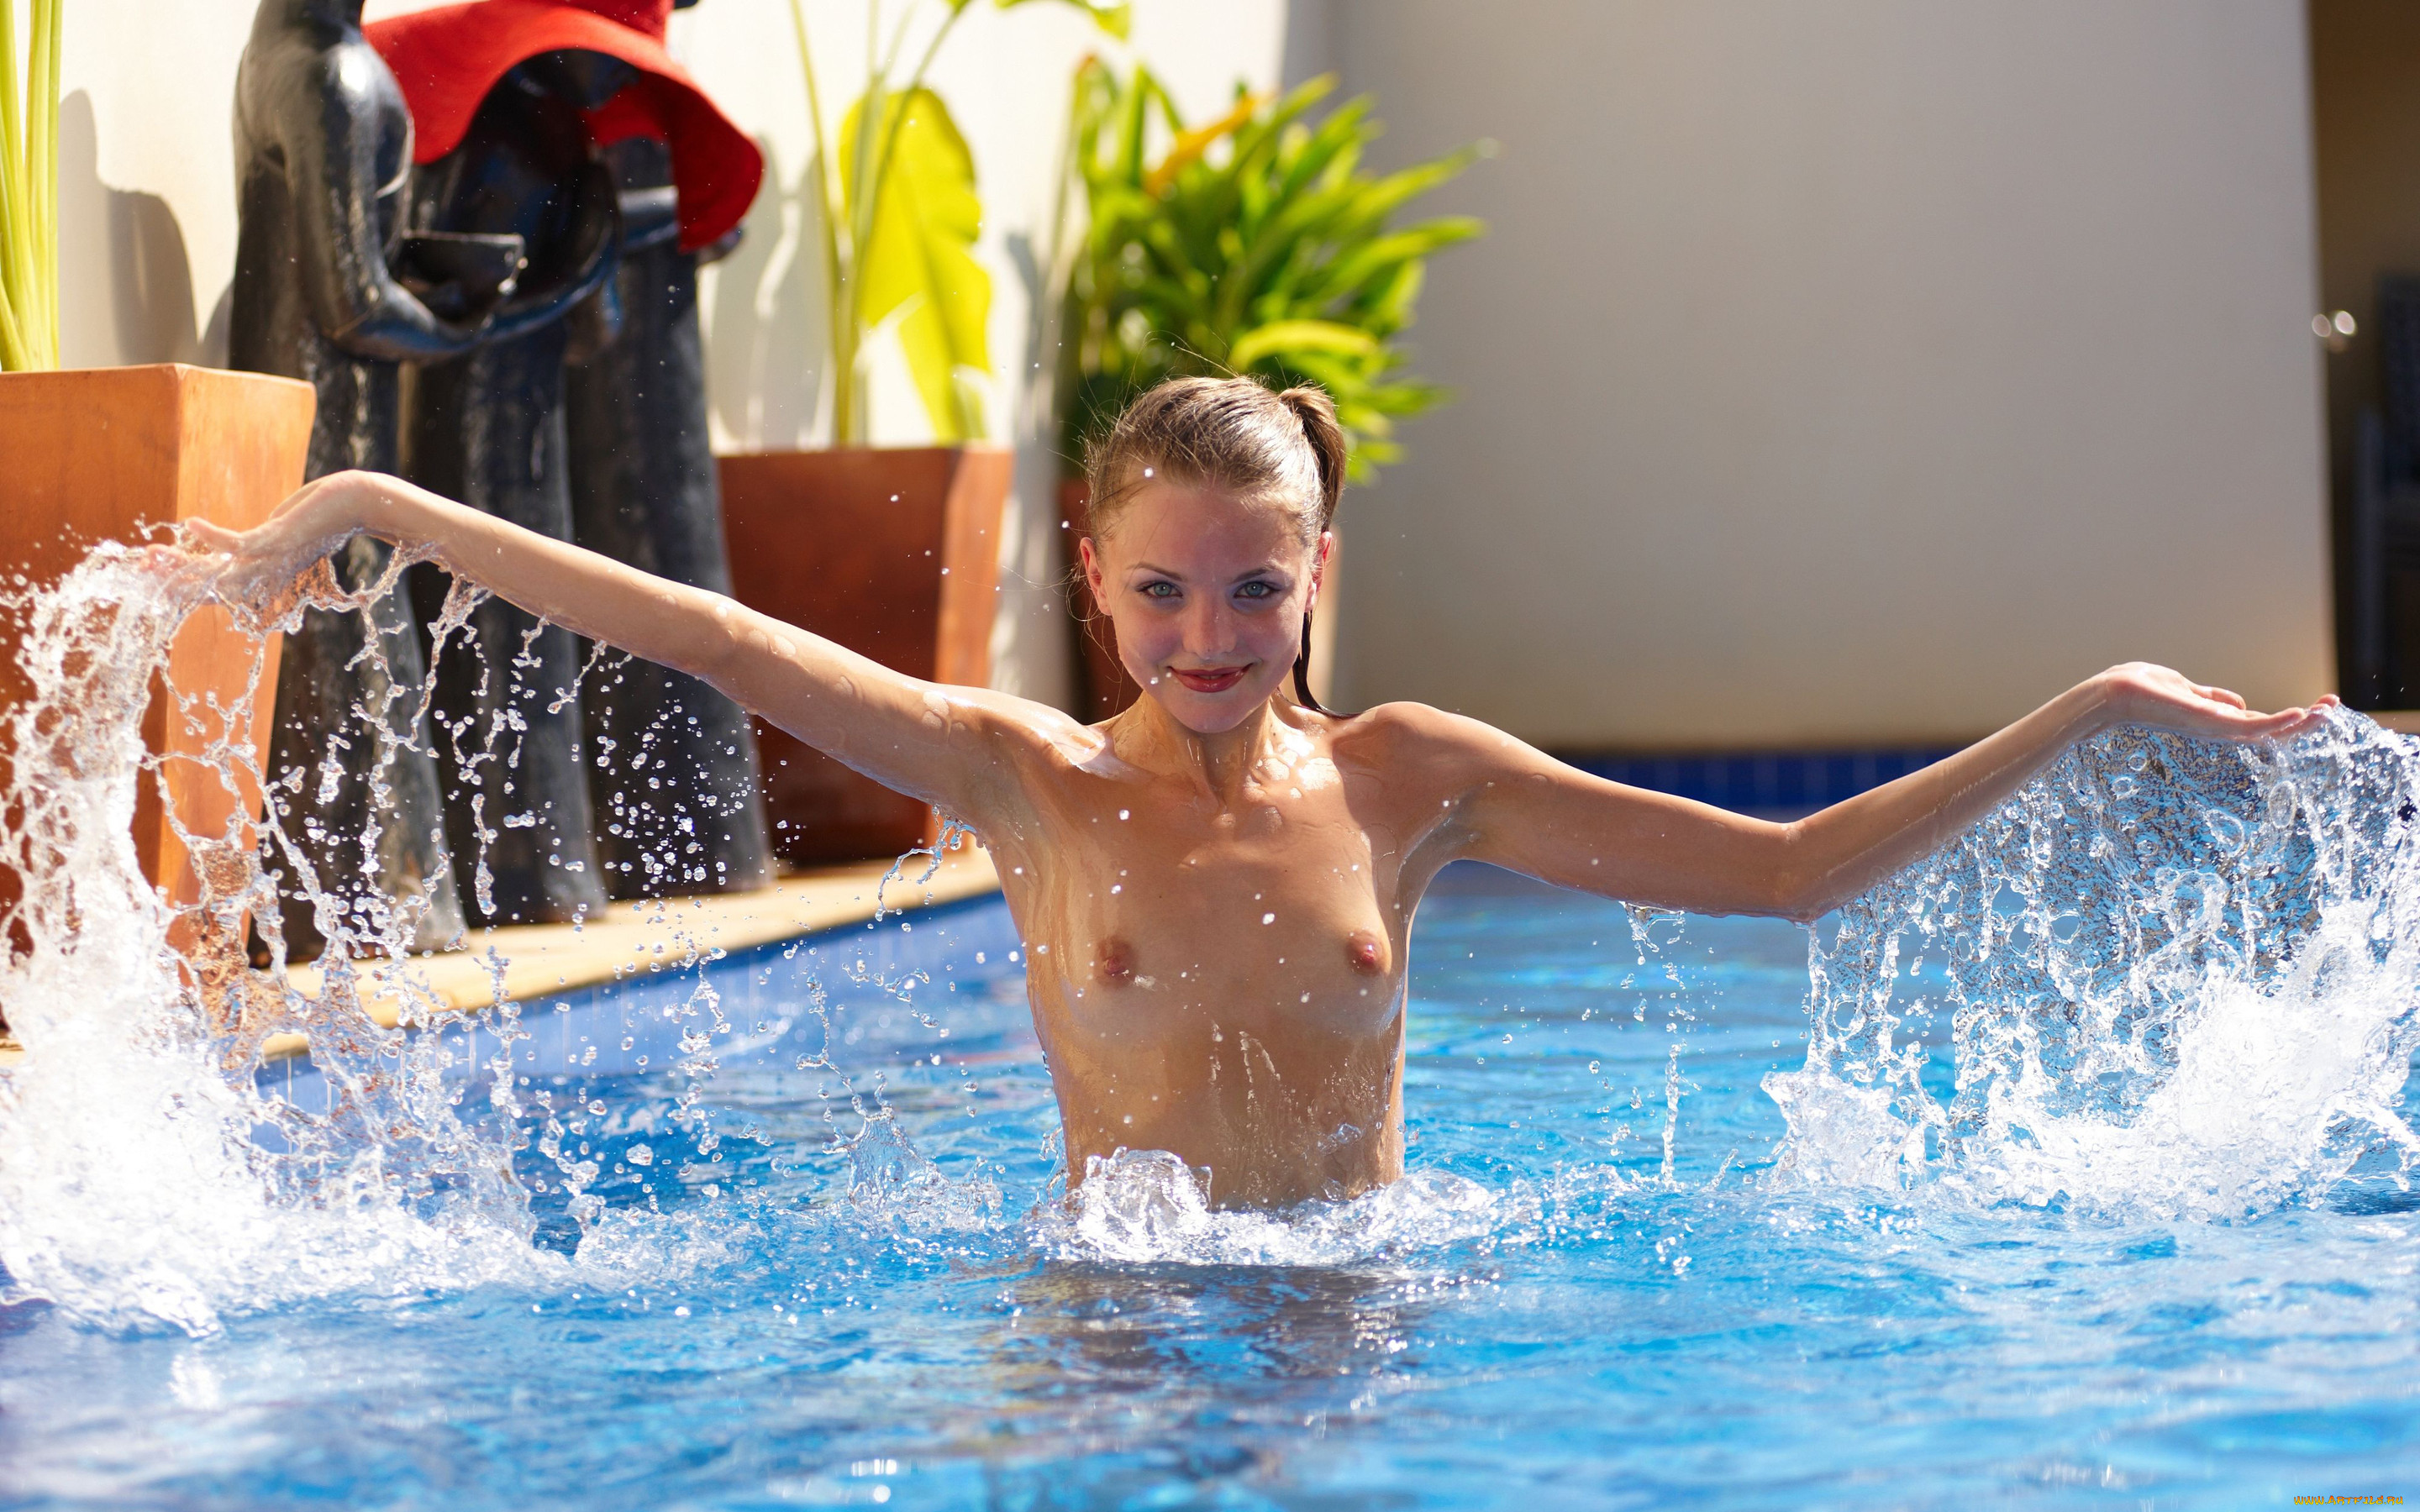 Photos swimming pool topless amateur